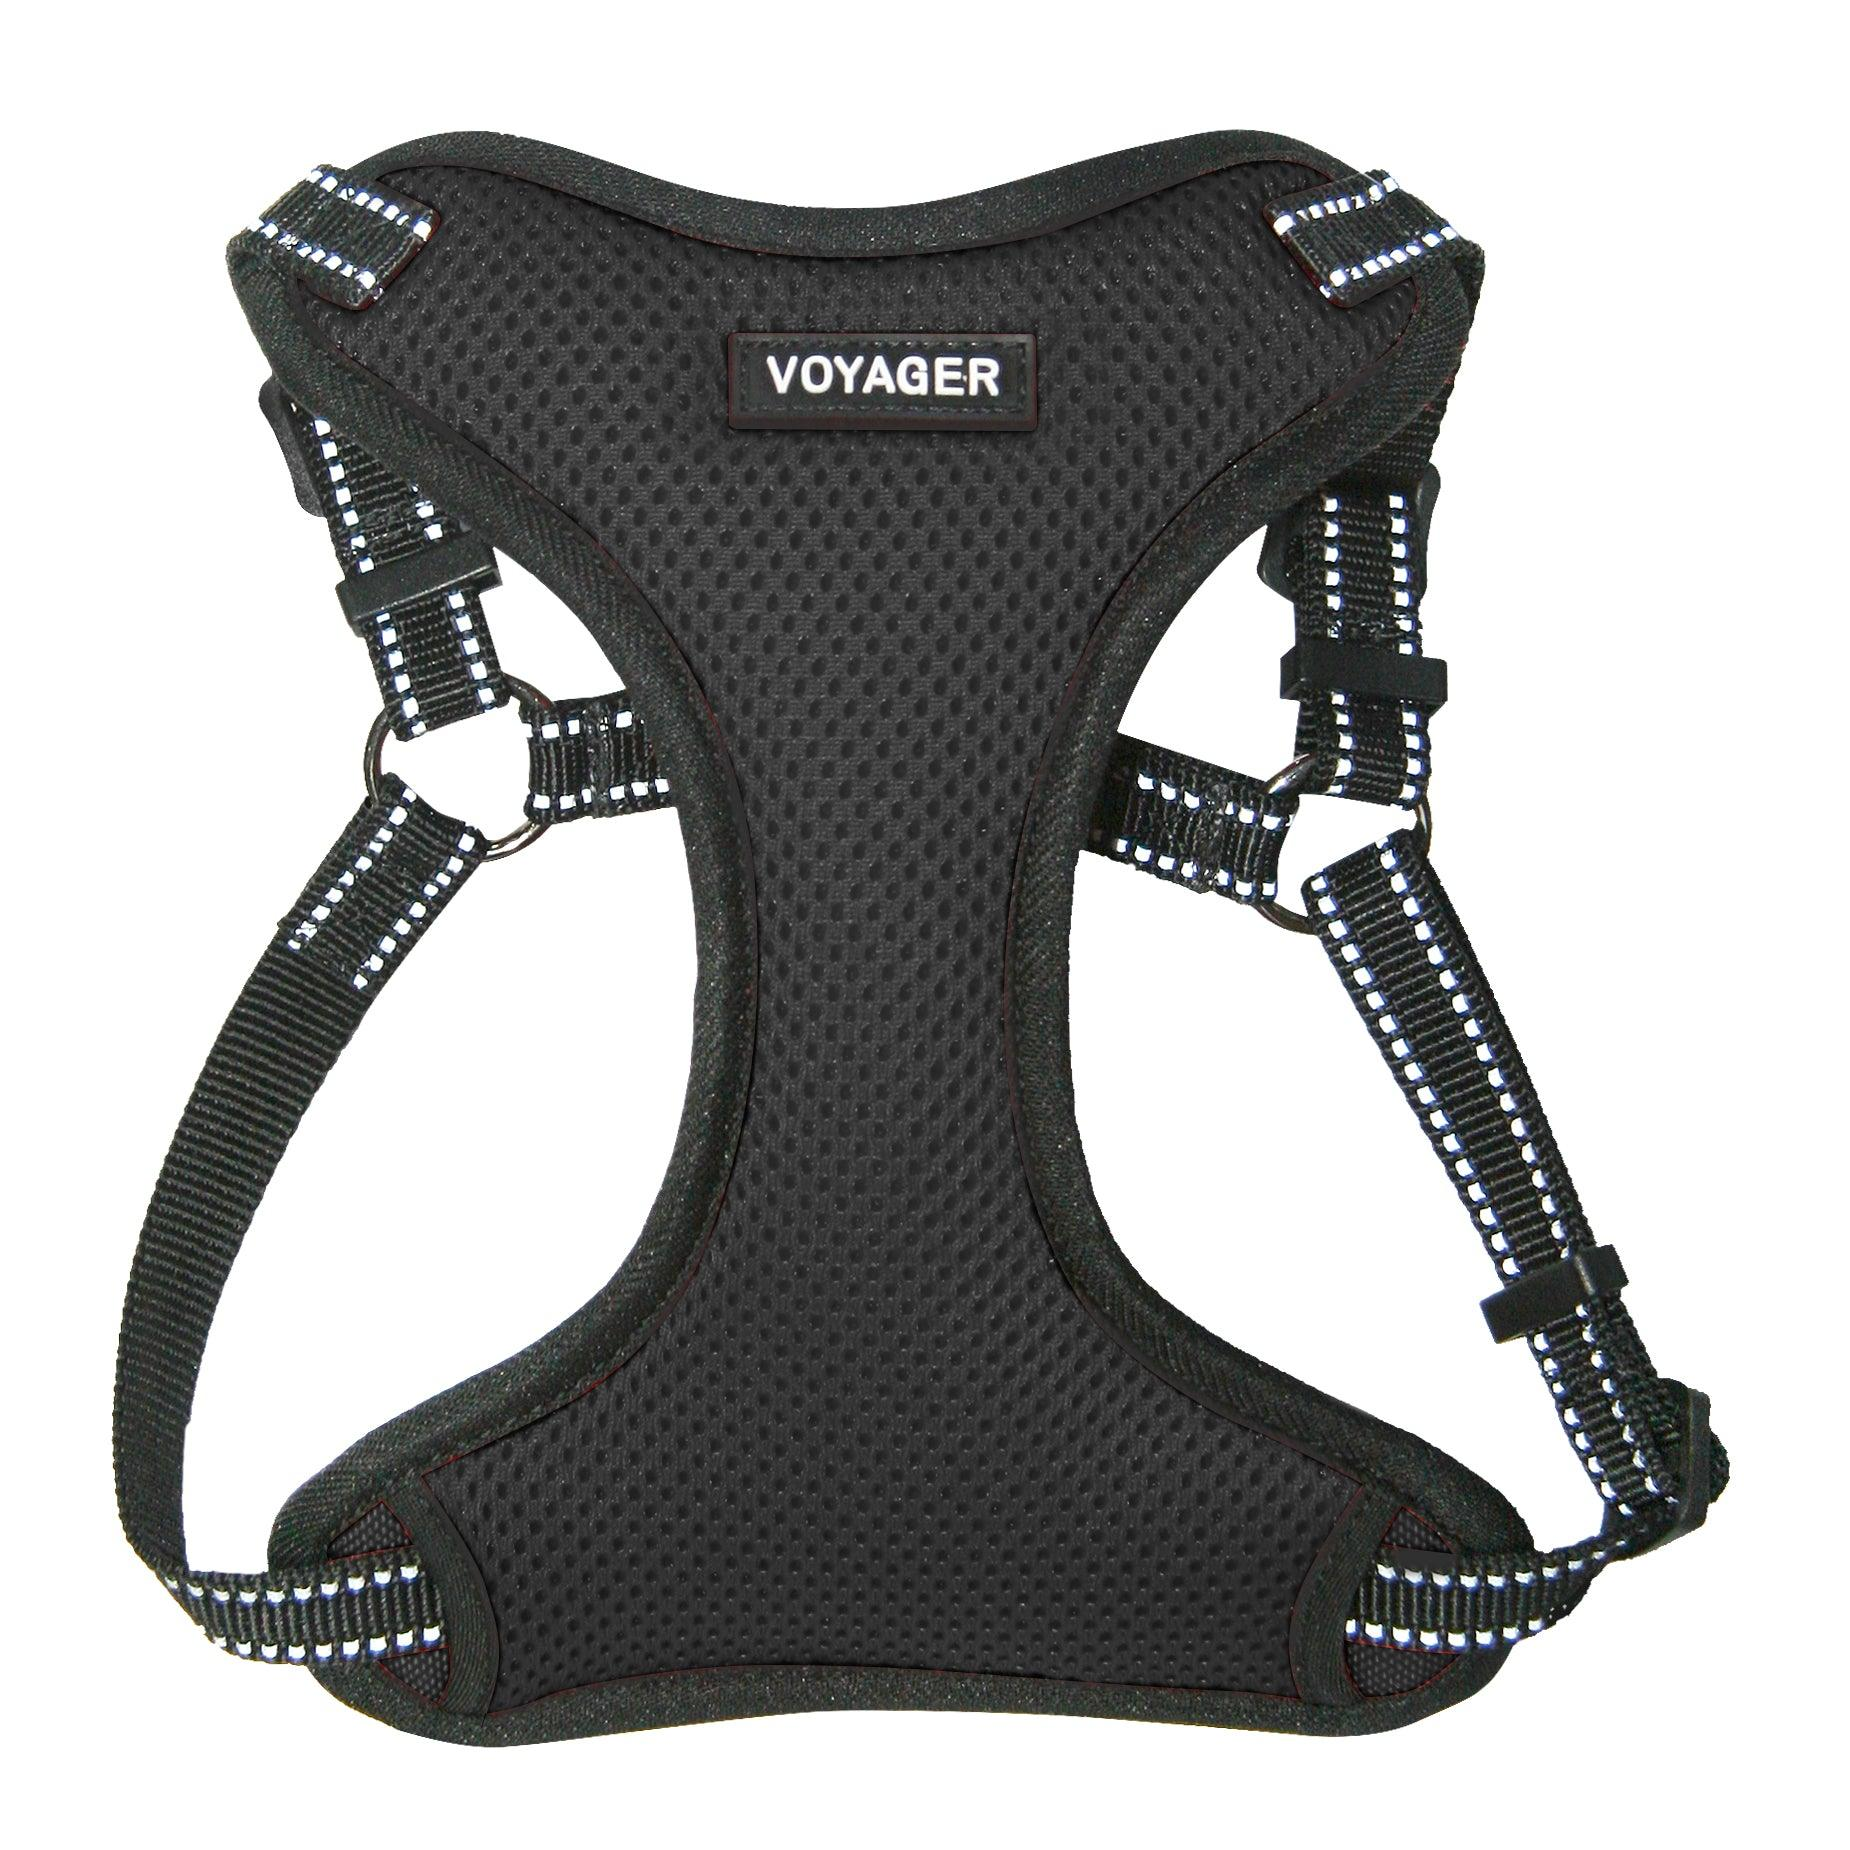 VOYAGER Step-In Flex Dog Harness in Black - Front